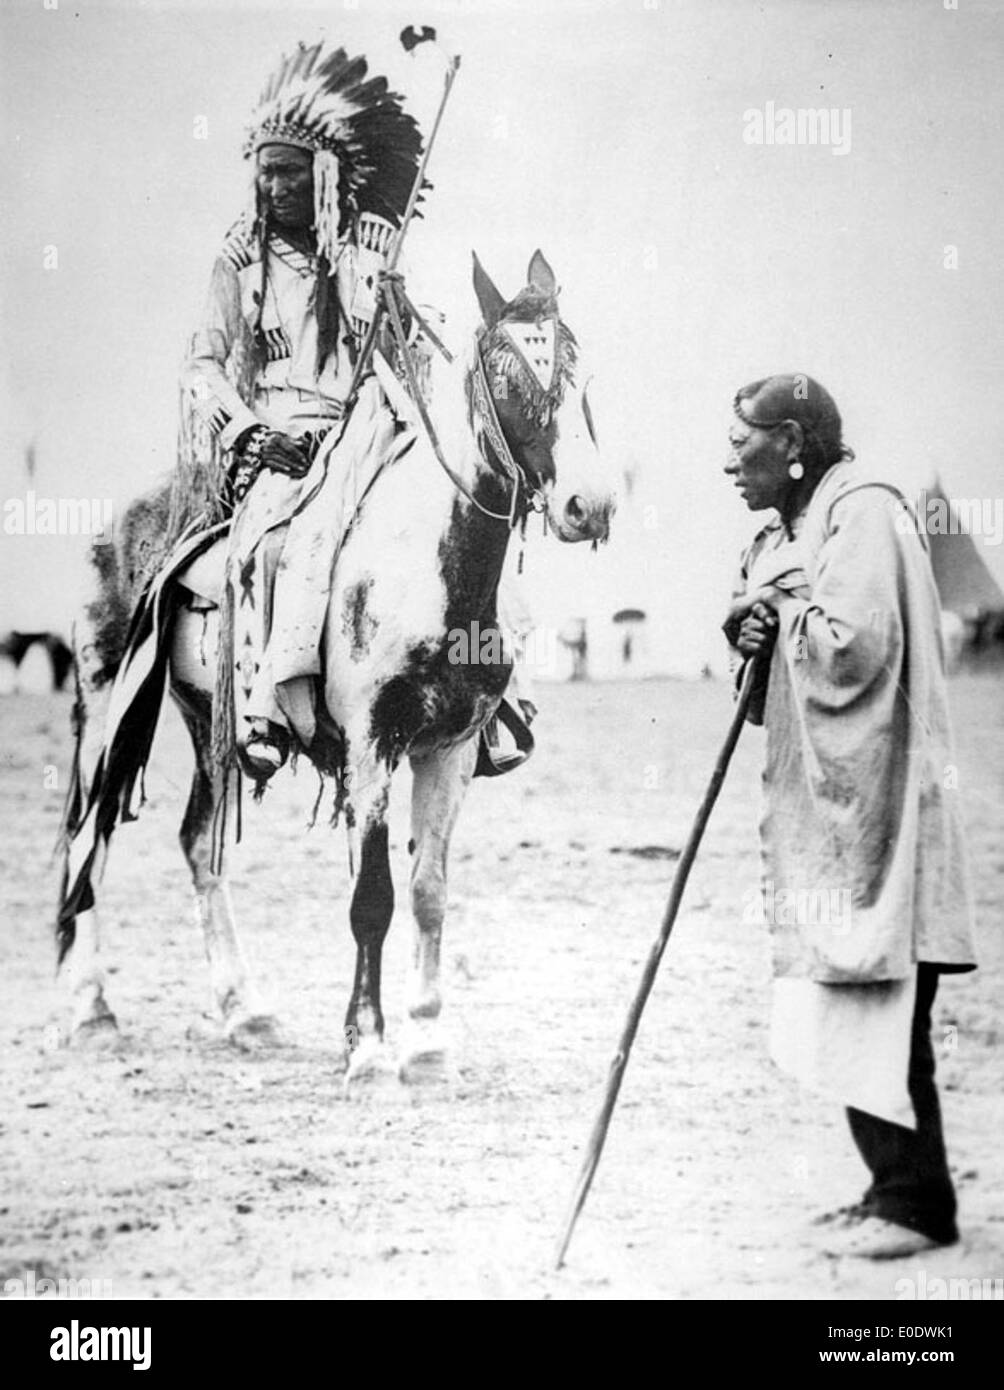 Unidentified Blackfoot Chief On Horseback Speaking To An Elderly Man - Stock Image